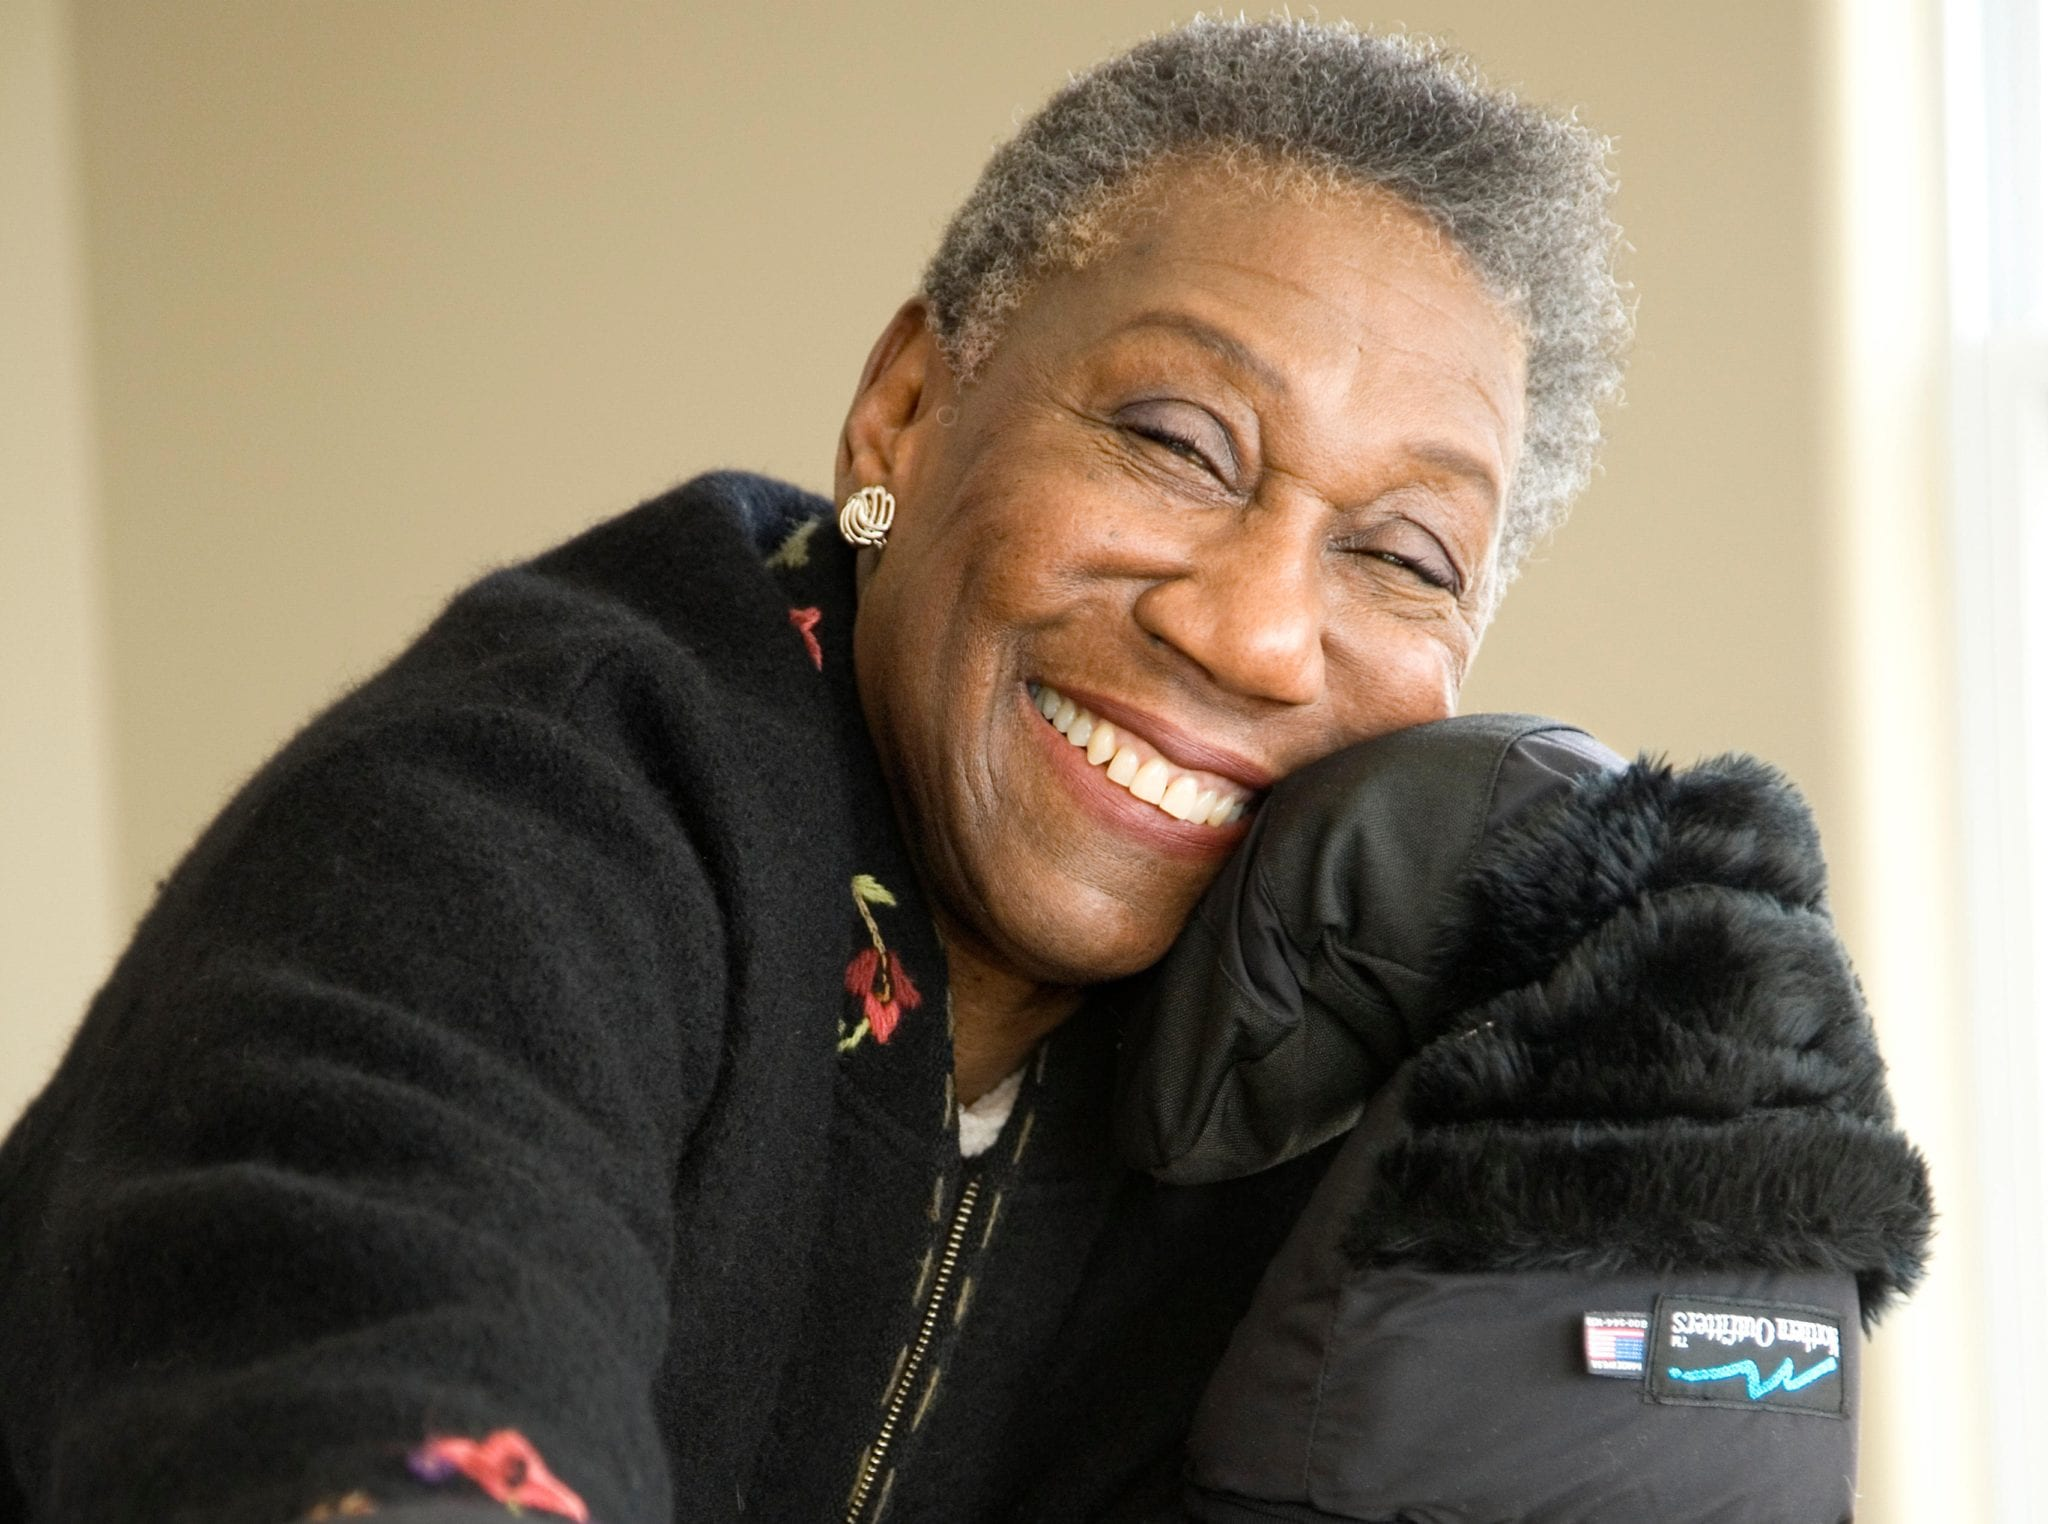 Barbara Hillary, The First Black Woman to Reach Both Poles